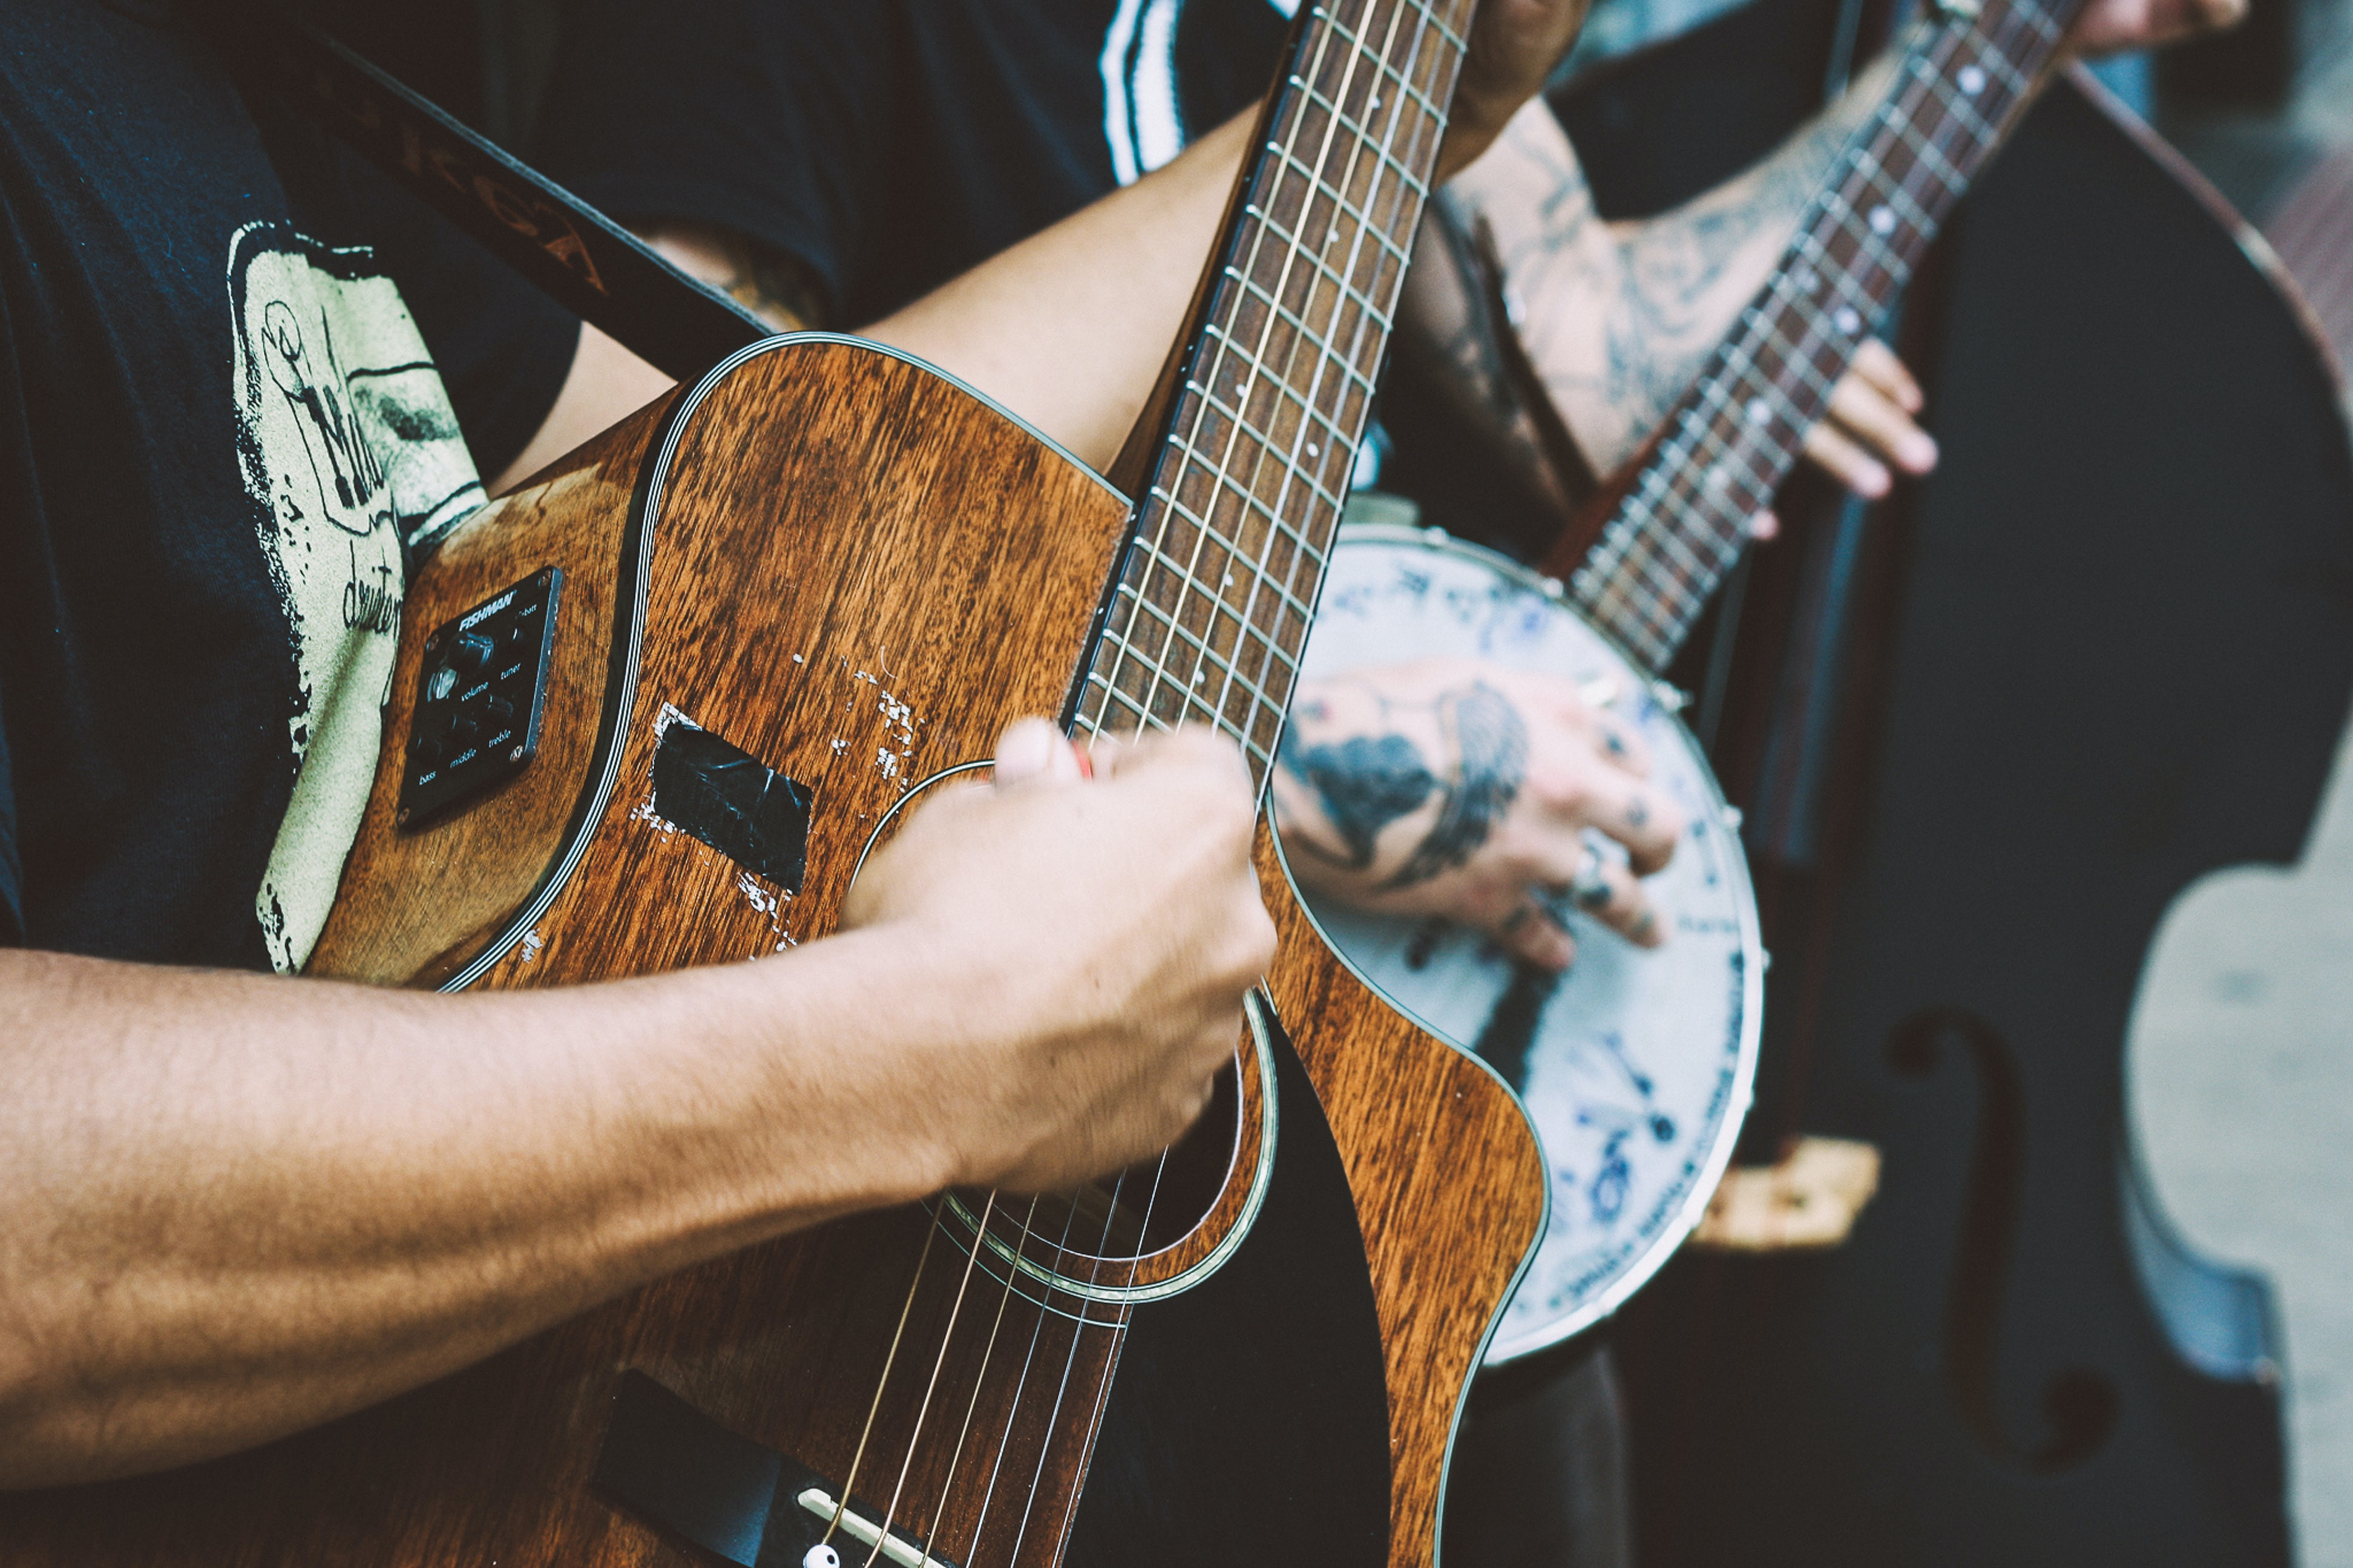 A close-up of a man's hand clutching a pick and playing a worn-out acoustic guitar